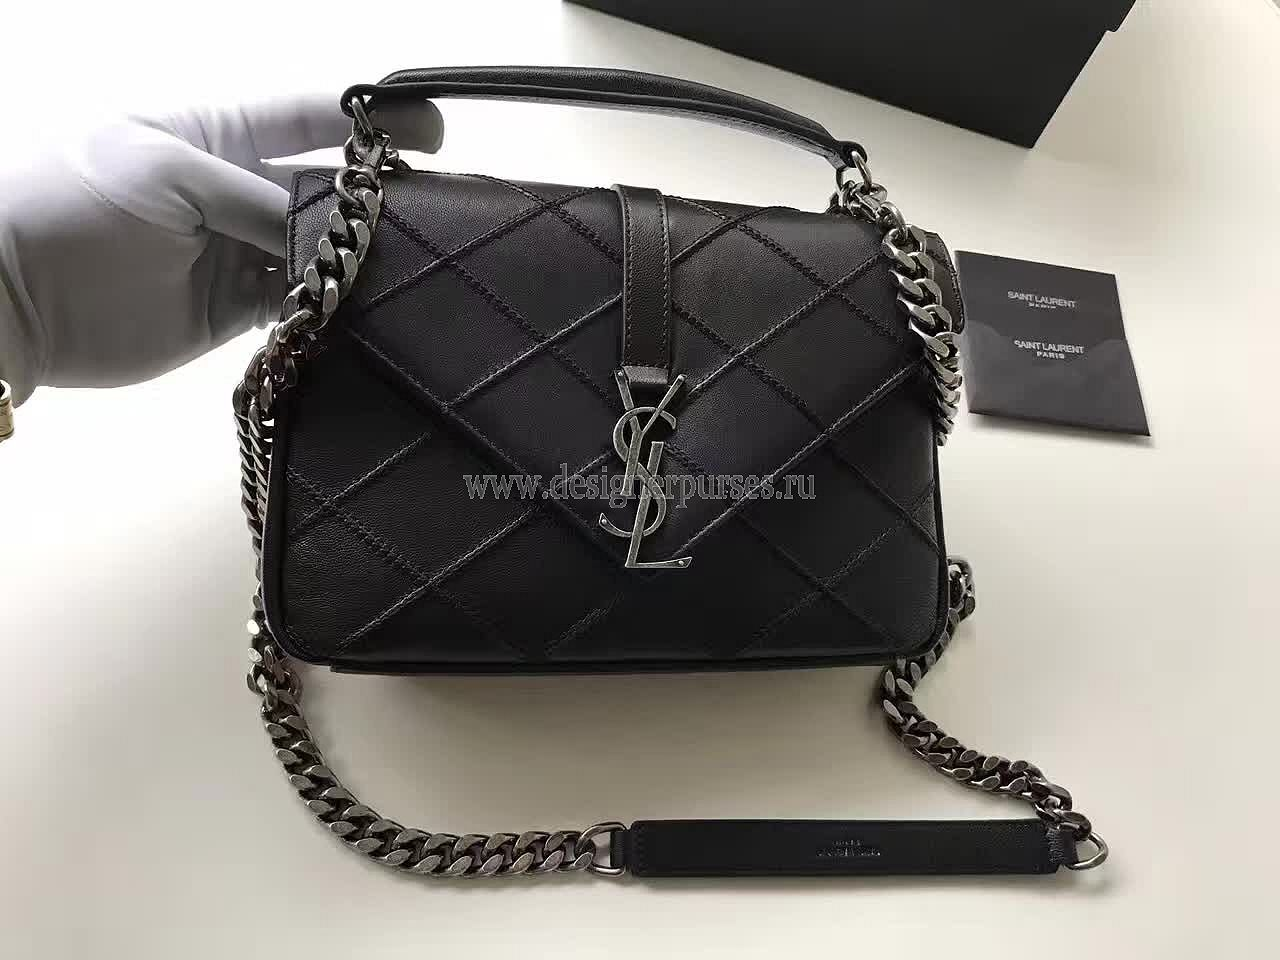 CLASSIC+SAINT+LAURENT+TOP+HANDLE+BAG+WITH+METAL+CHAIN+AND+LEATHER+REMOVABLE+ SHOULDER+STRAP 350e1c2c628c9